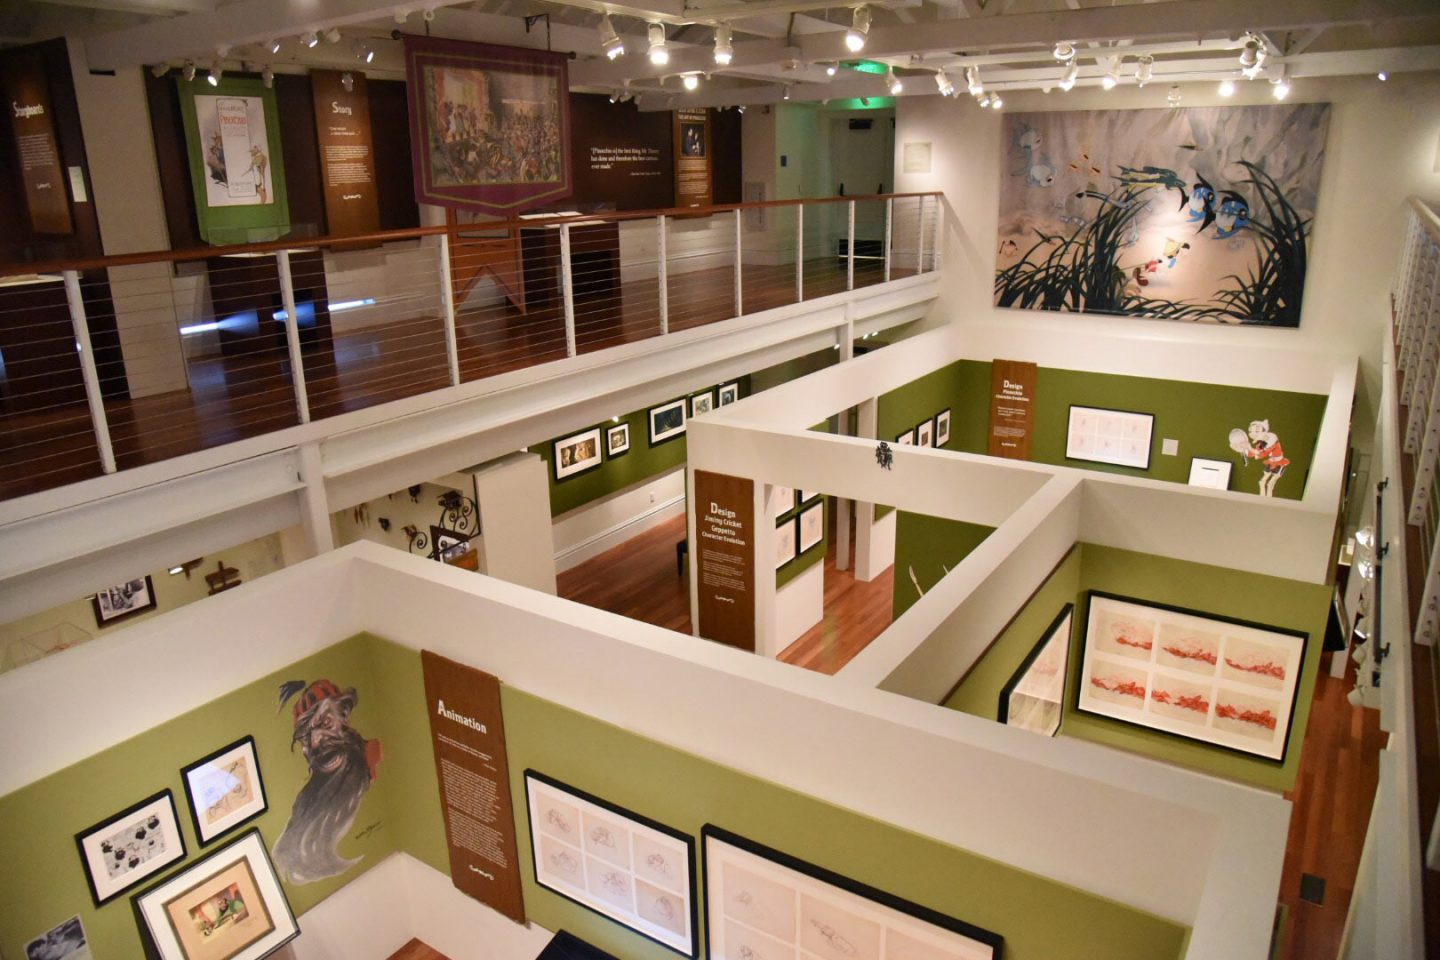 Overview of the exhibition at the Walt Disney Family Museum.